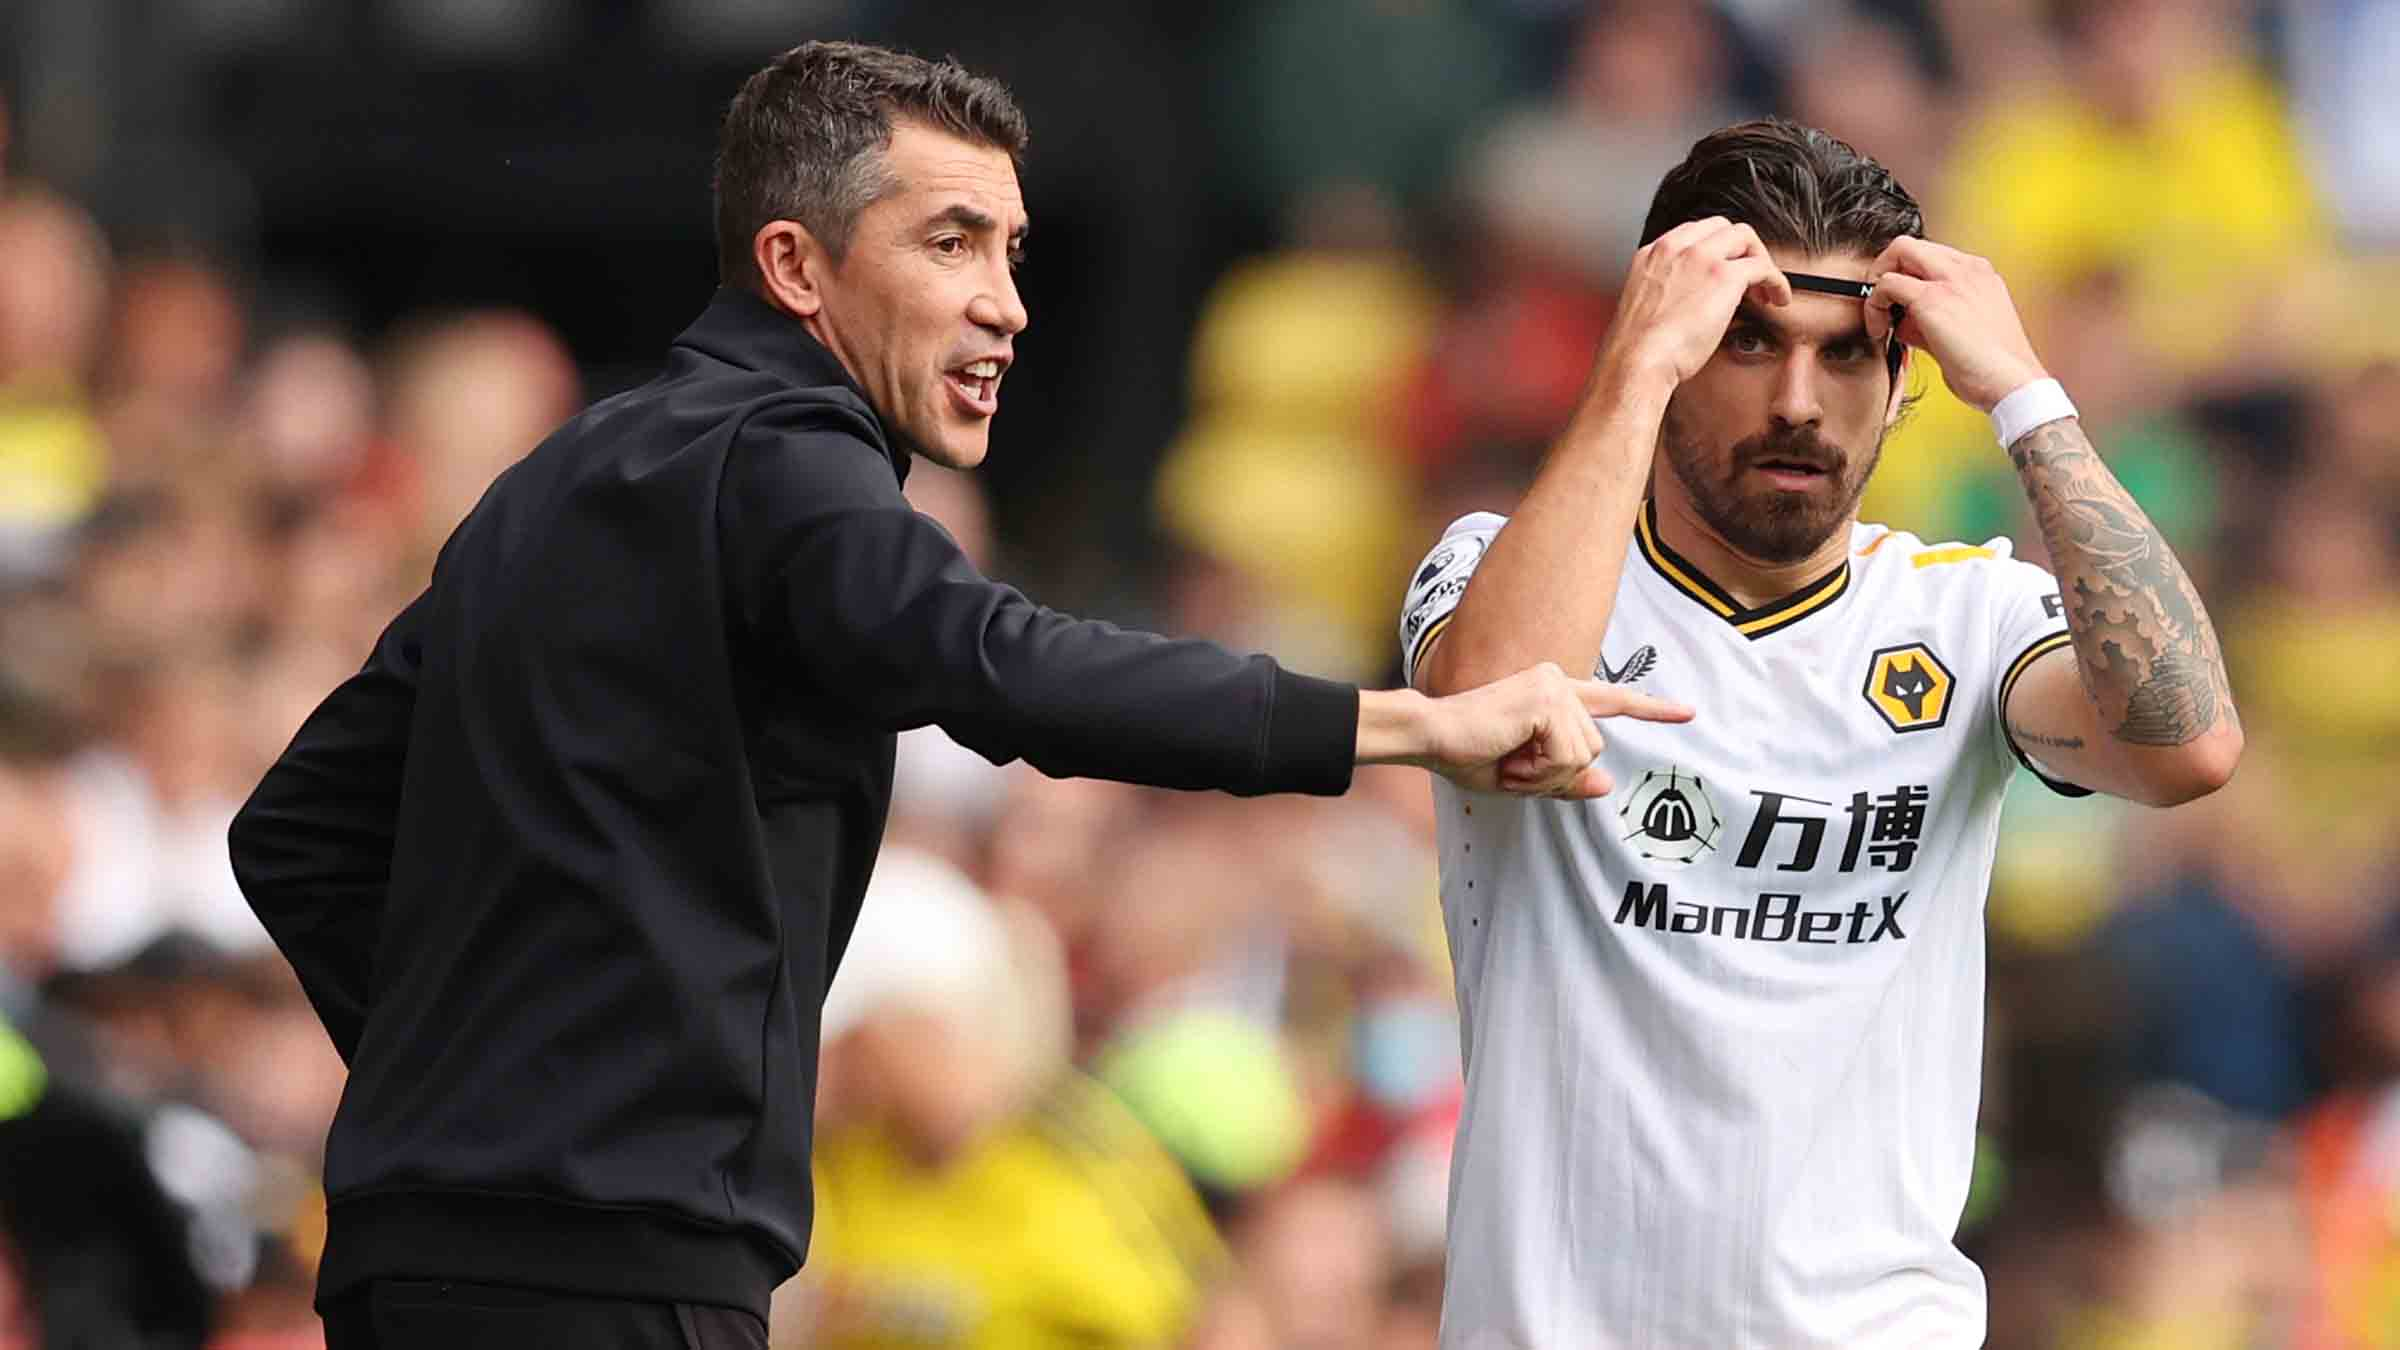 Lage   On Watford win, Hwang's debut goal and strength off the bench